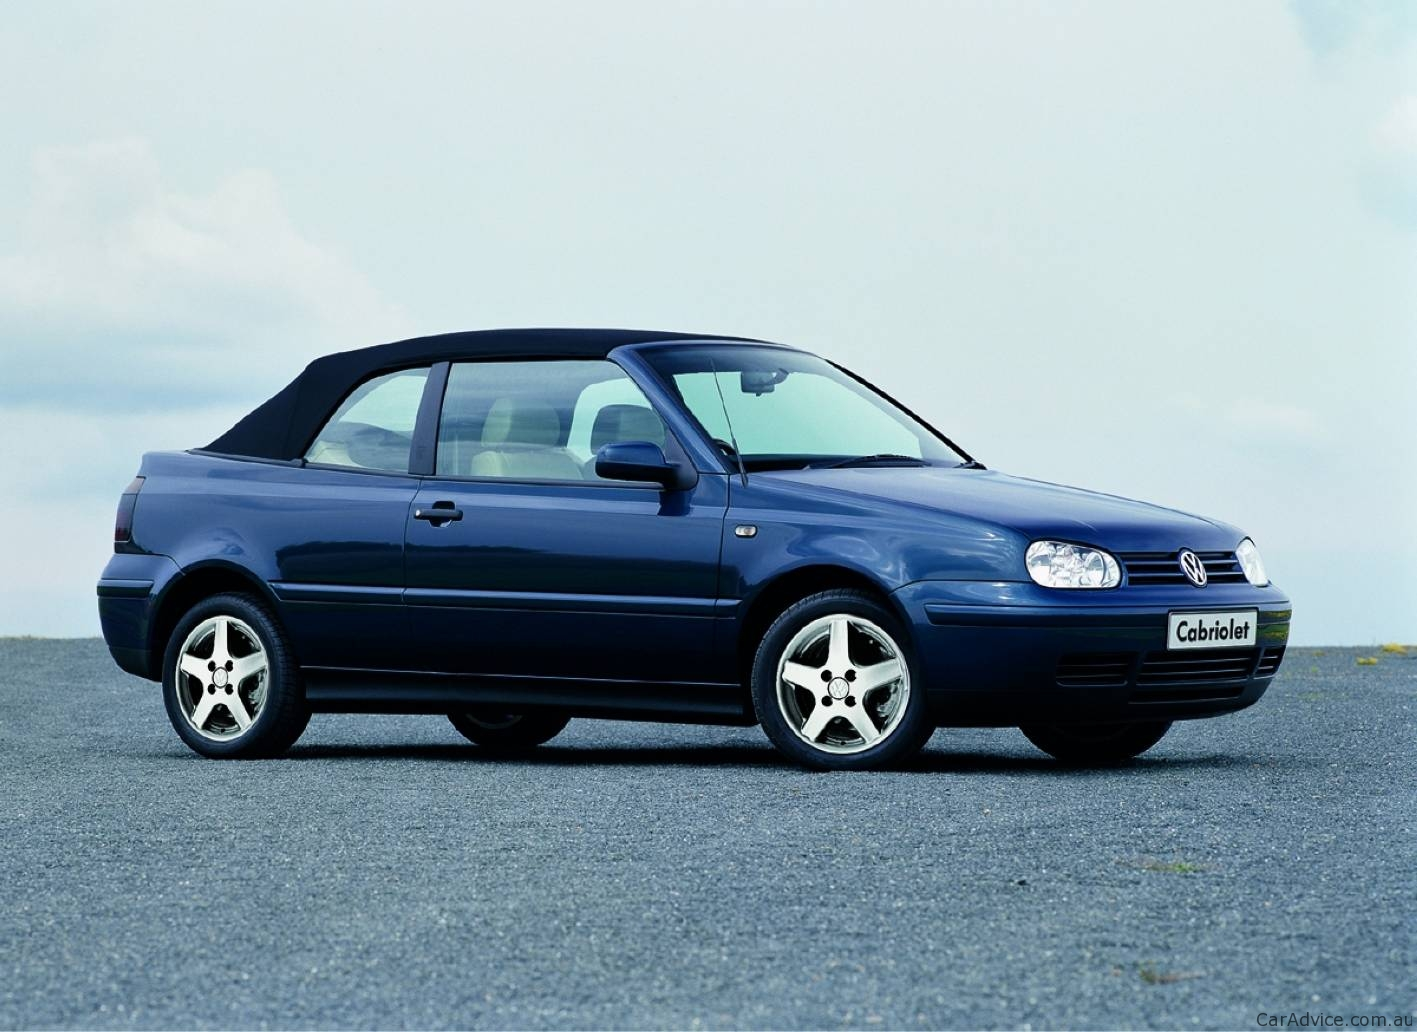 volkswagen golf cabrio to be reintroduced in 2011 photos 1 of 3. Black Bedroom Furniture Sets. Home Design Ideas